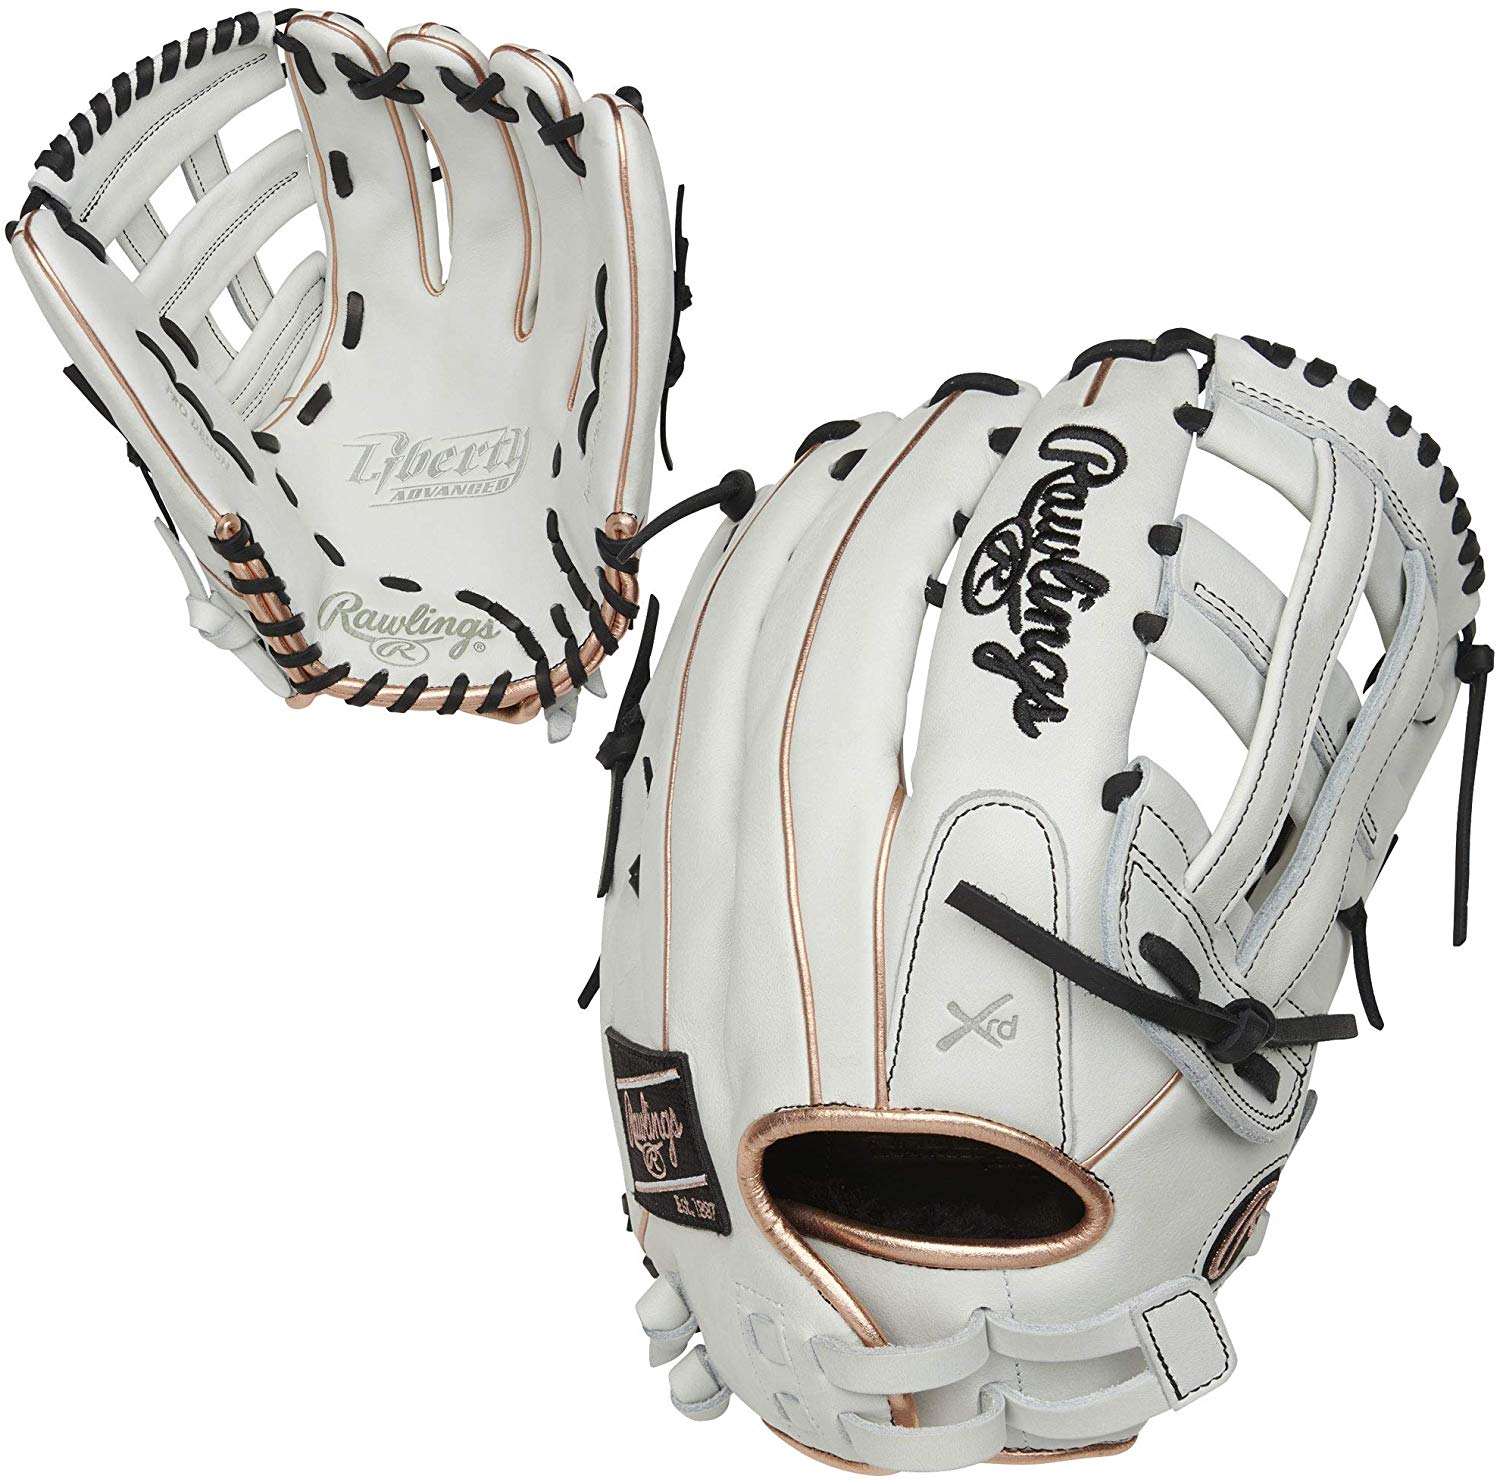 rawlings-liberty-advanced-13-in-softball-glove-glove-right-hand-throw RLA130-6RG-RightHandThrow Rawlings 083321665264 <p>White/Rose Gold/Black Colorway 13 Inch Model H Web Break-In 70% Factory